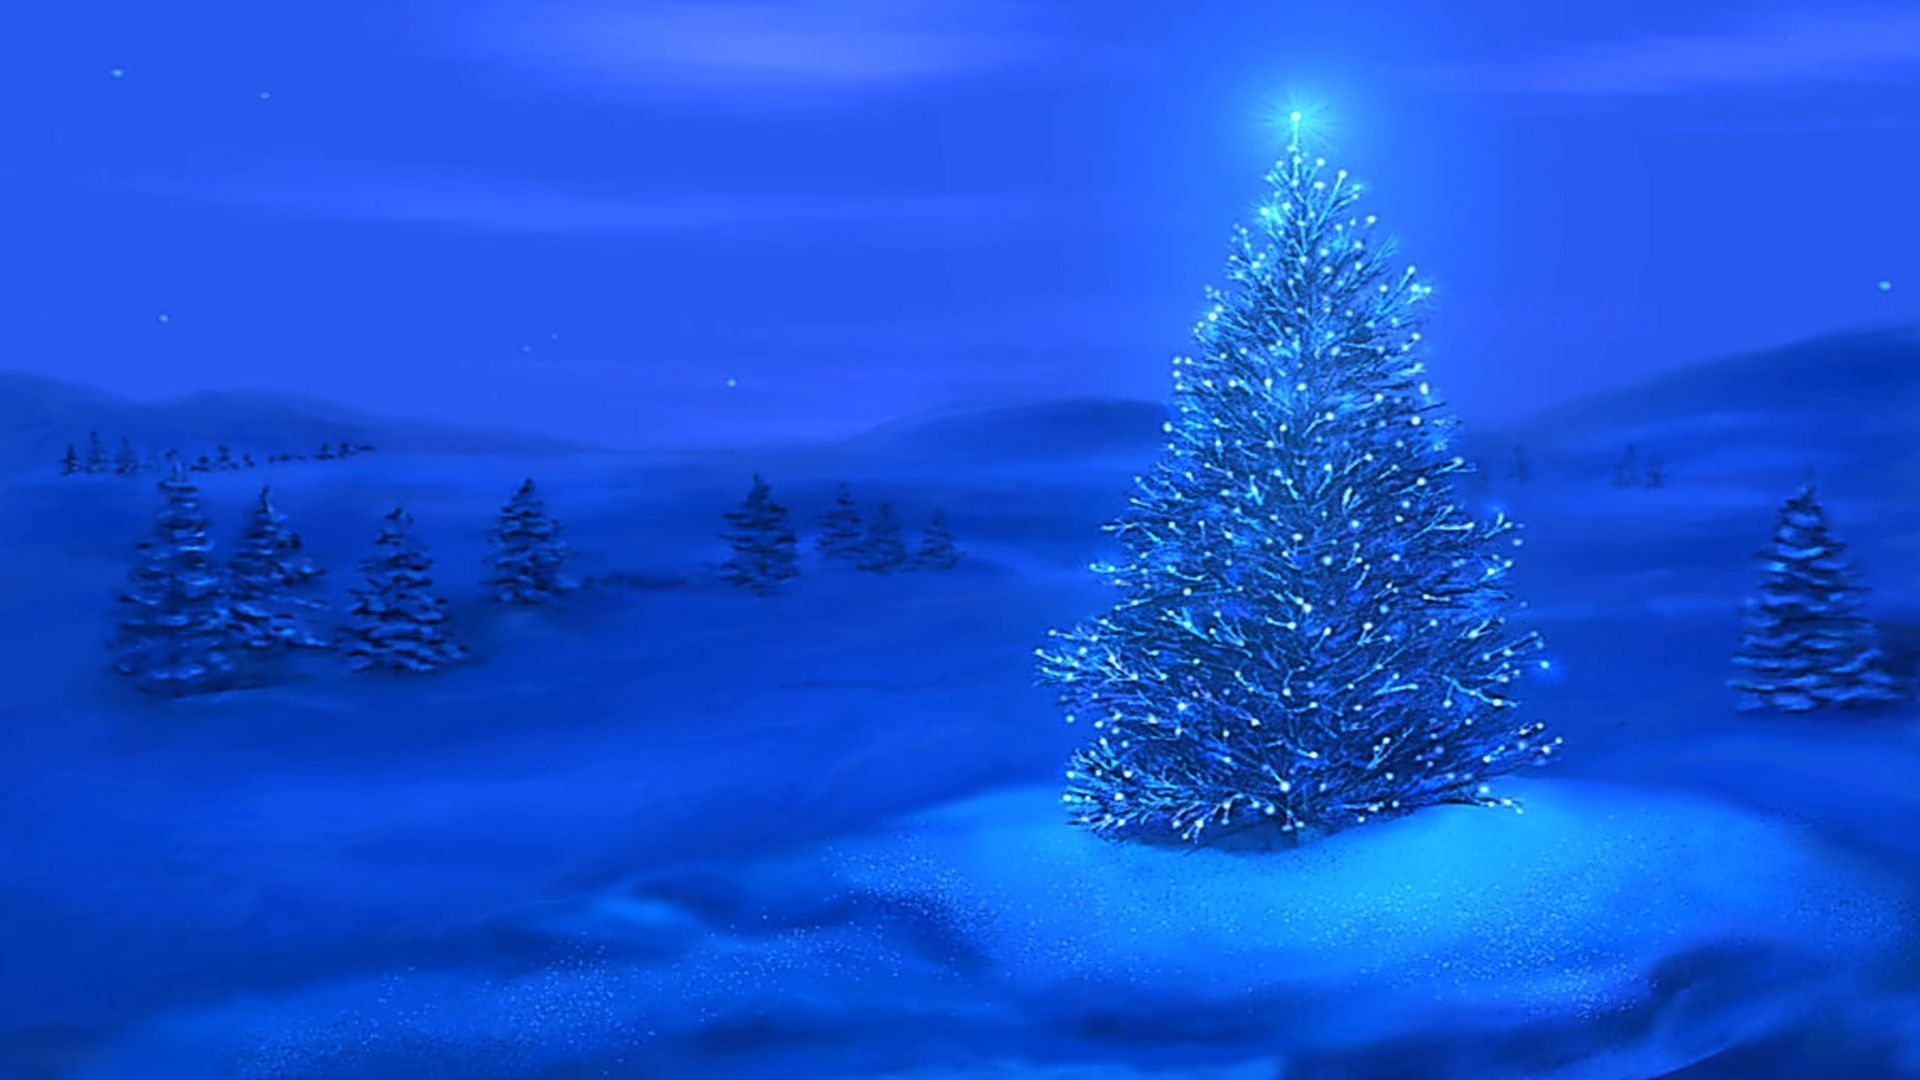 Free Christmas screensavers page 5 Deck The Tree Dozens of colorful baubles fall and float around a Christmas tree